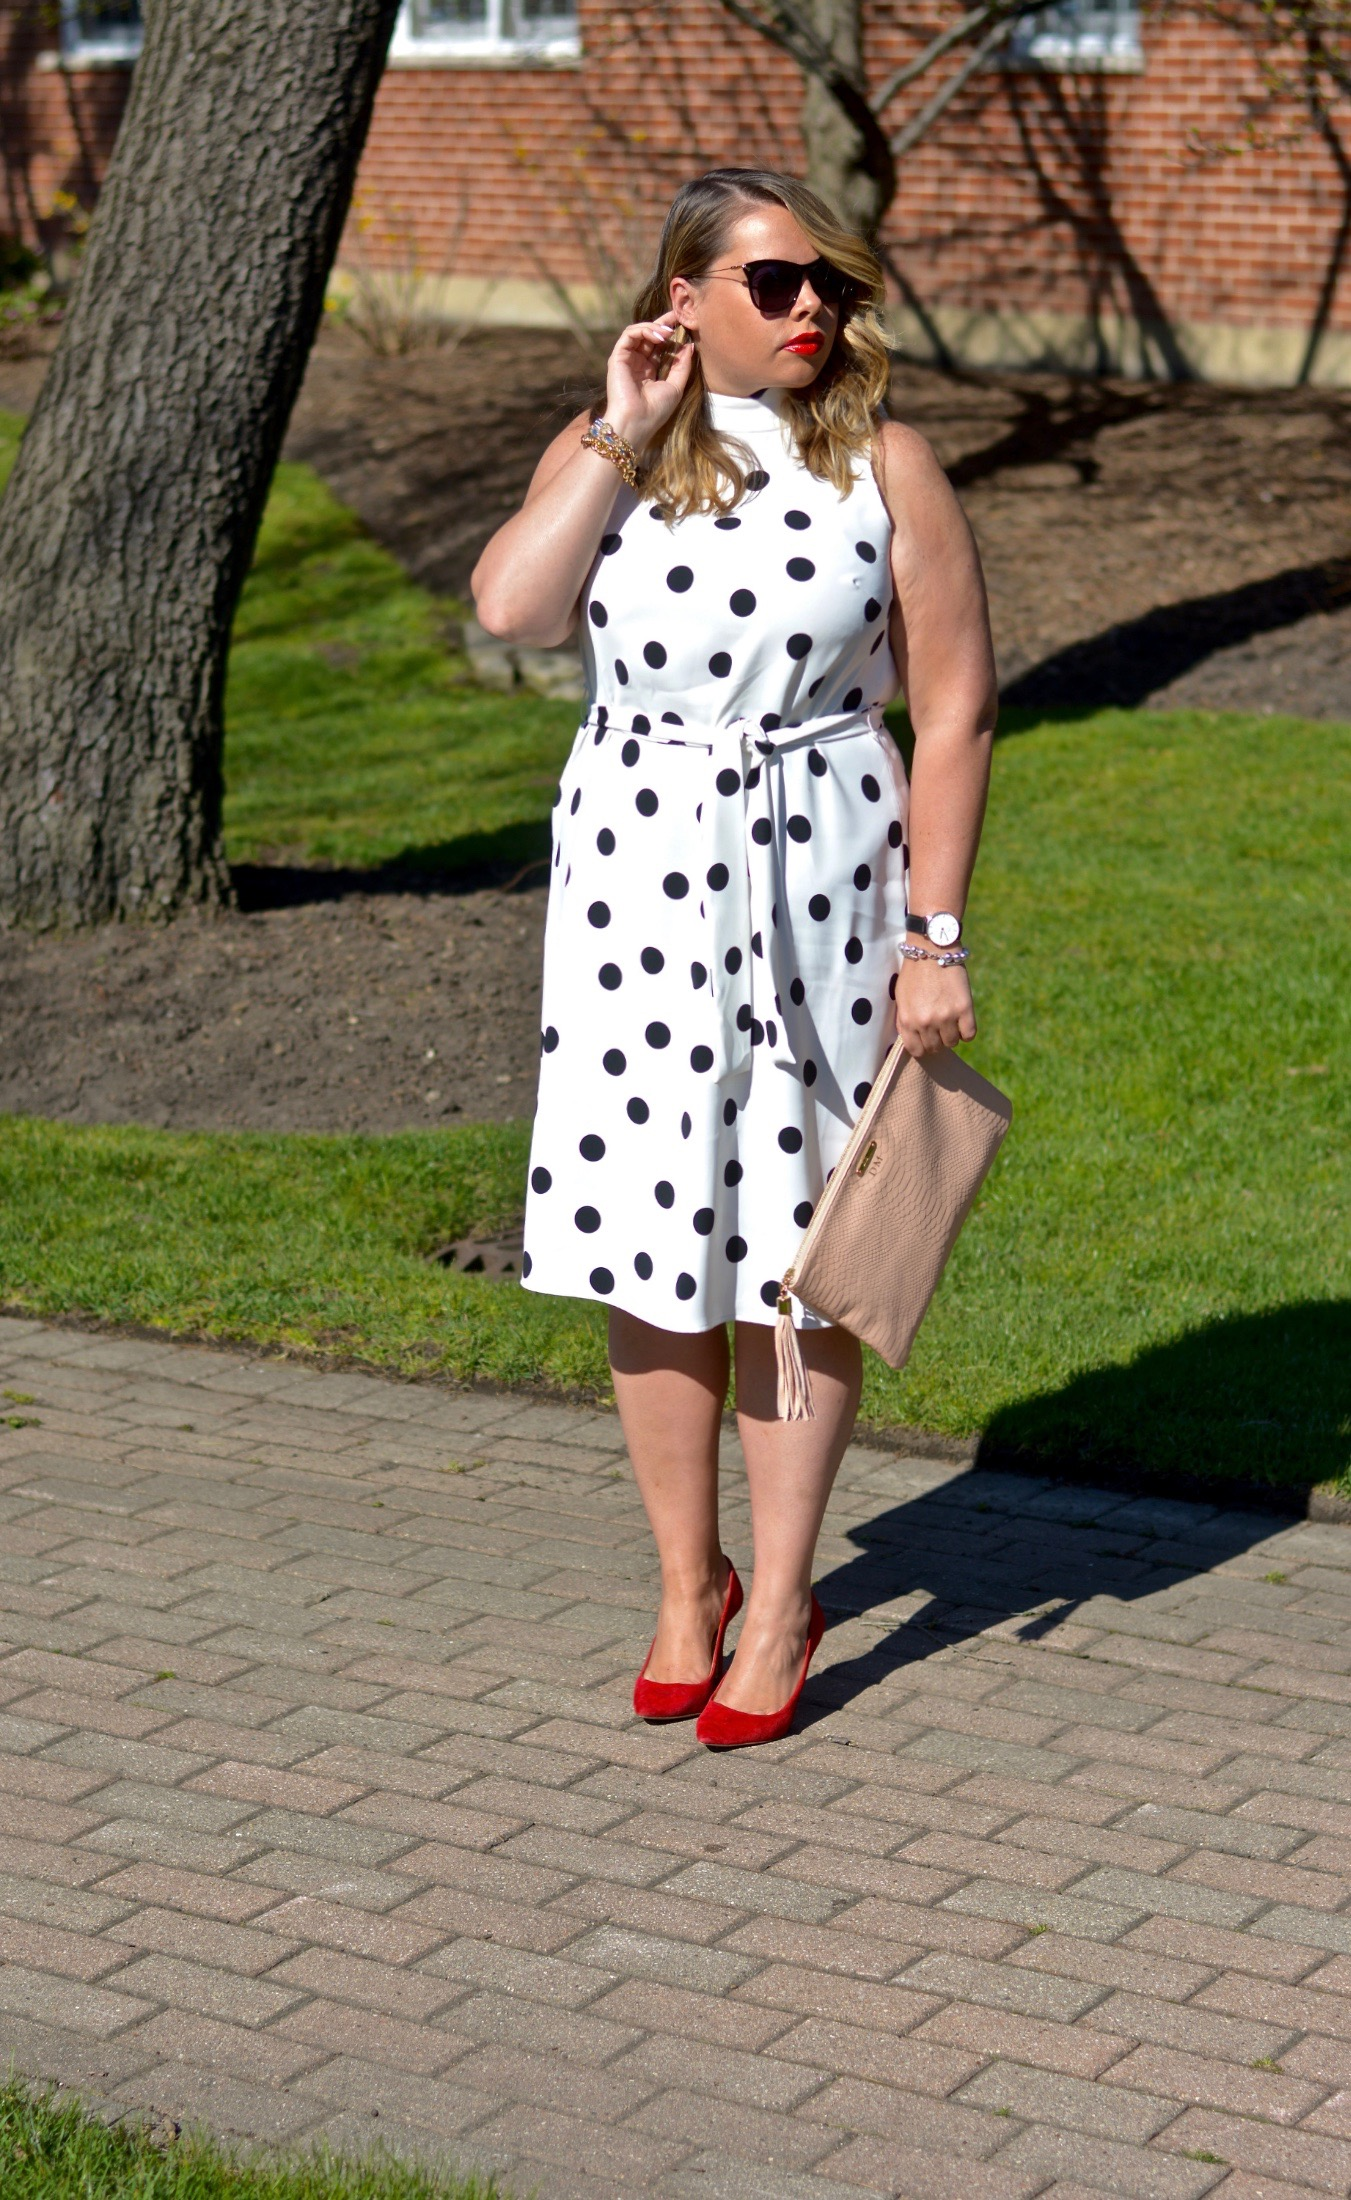 workwear-wednesday-belted-polka-dot-dress-4